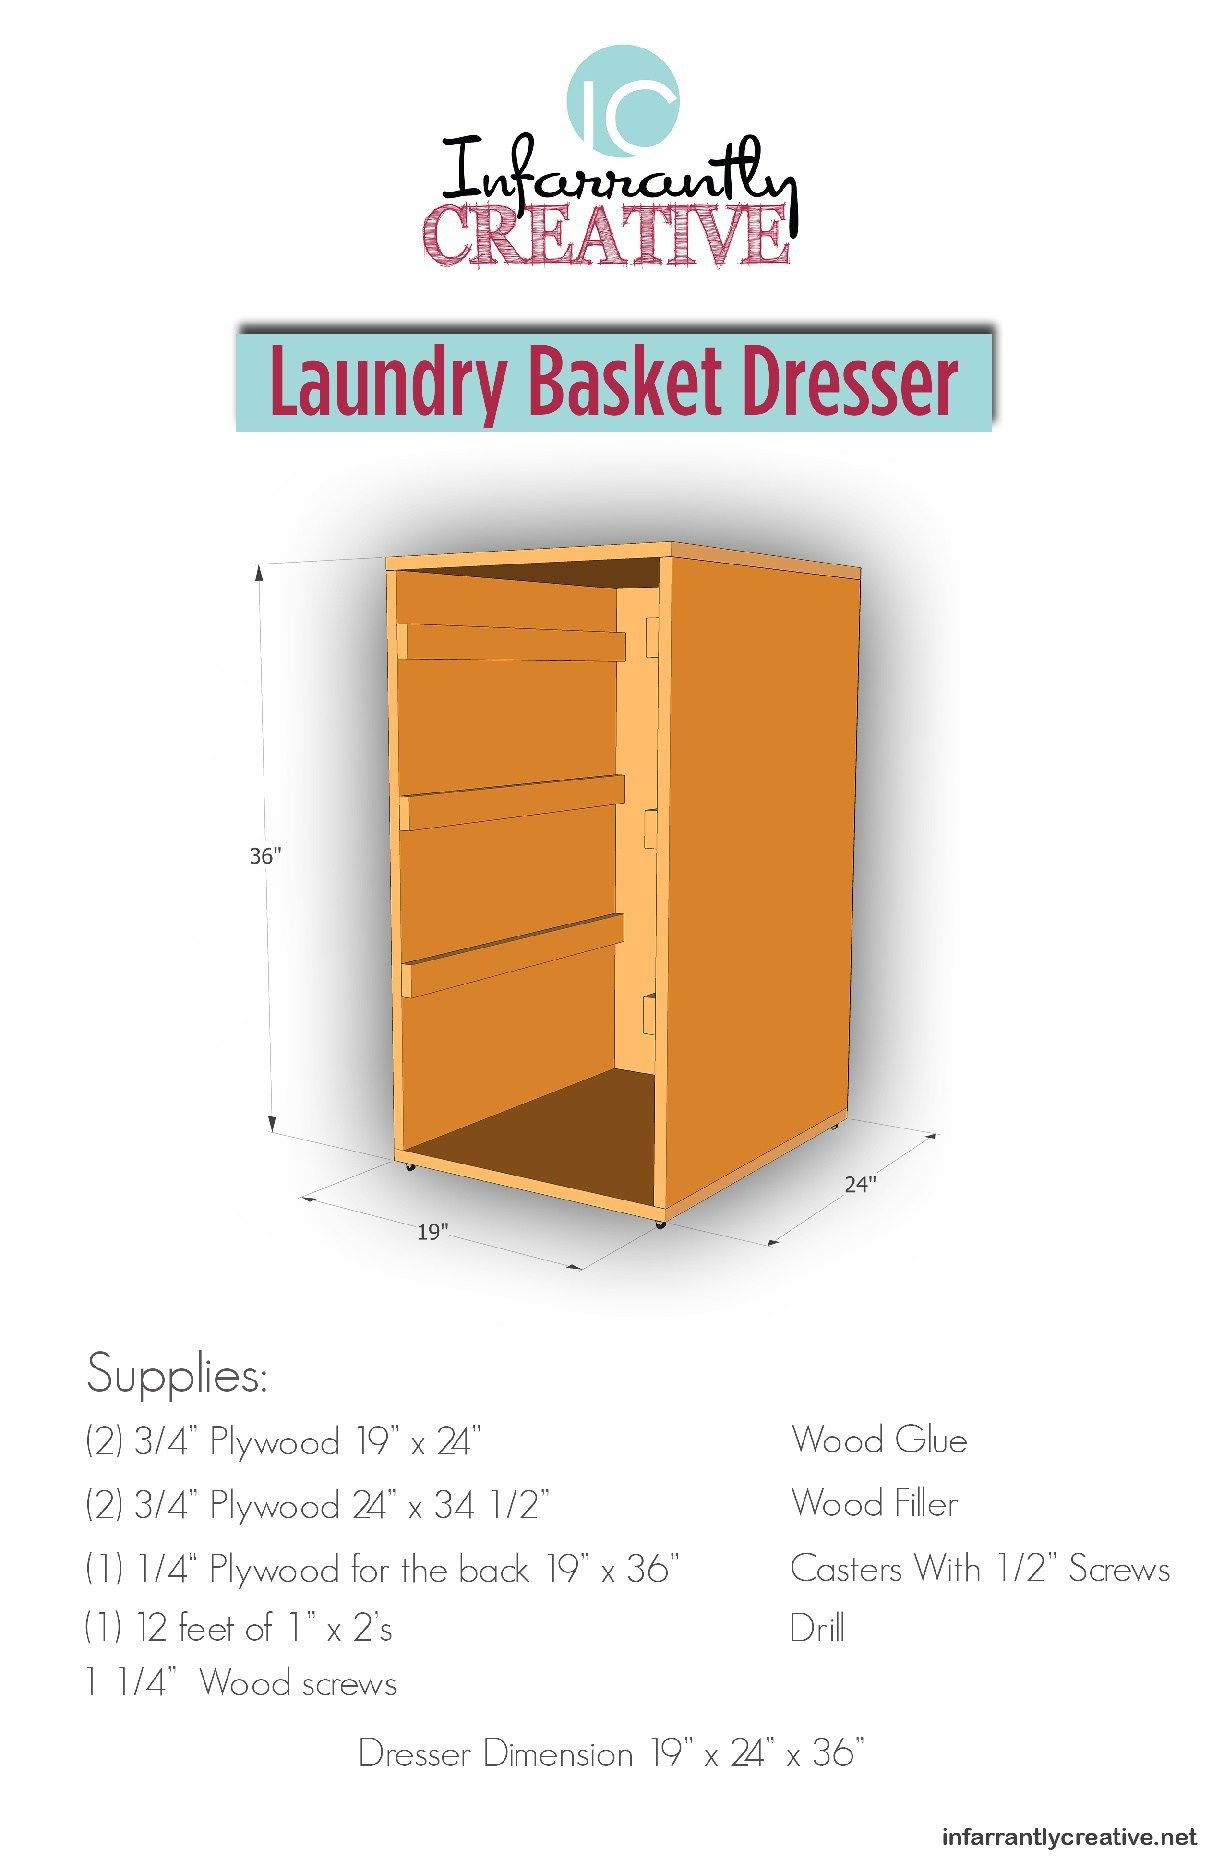 Laundry Basket Dresser Download With Images Laundry Basket Dresser Diy Laundry Basket Laundry Basket Storage Diy